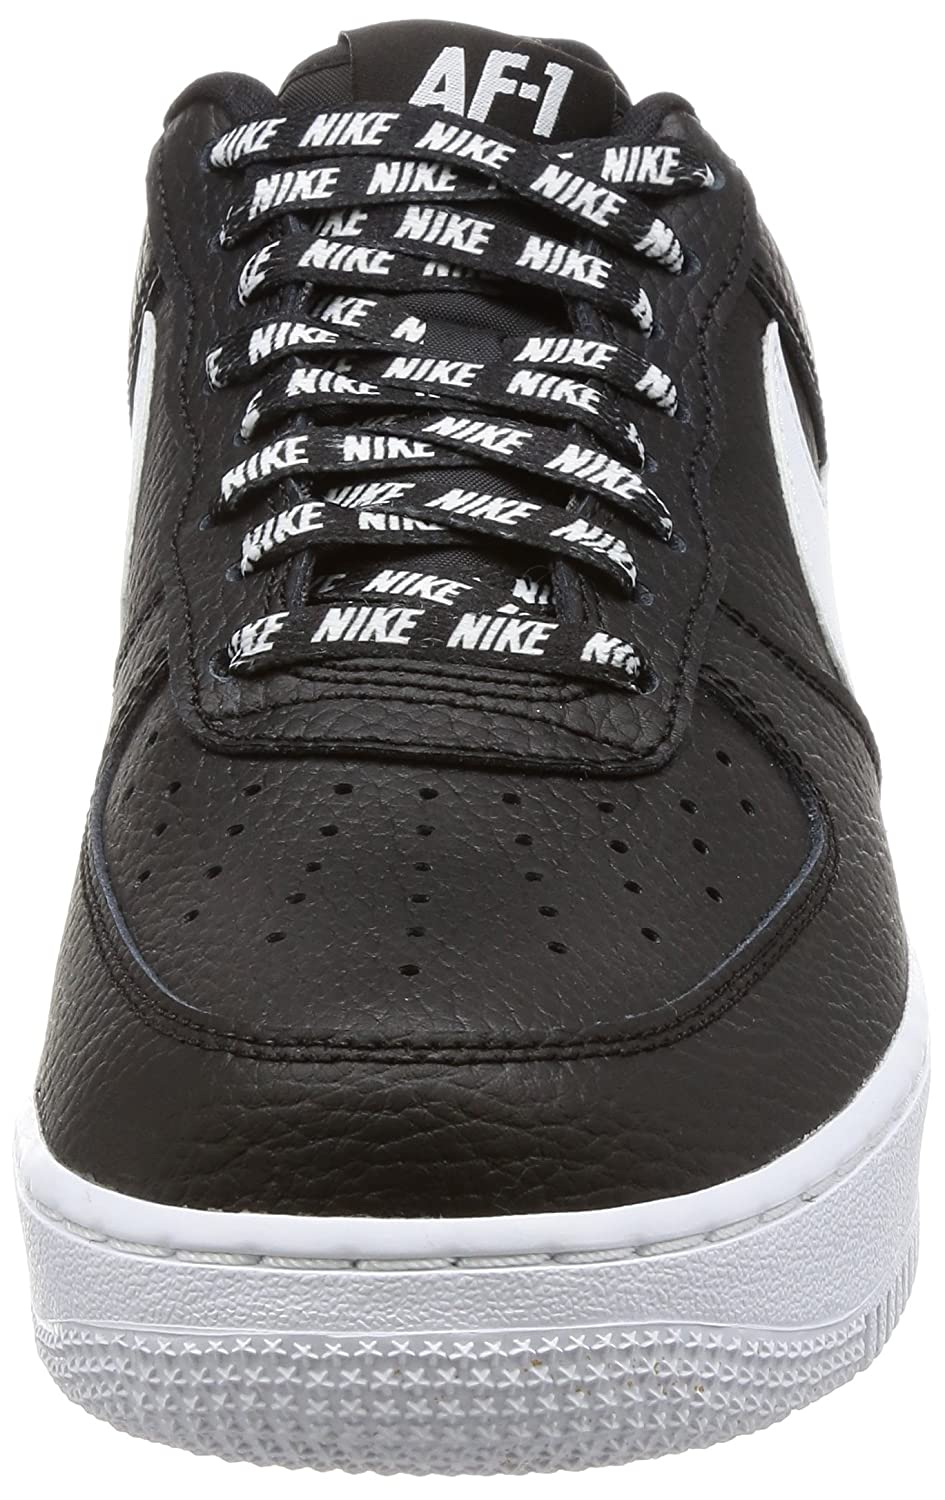 Nike Men s Air Force 1  07 LV8 Black White Basketball Shoe 13 Men US  Buy  Online at Low Prices in India - Amazon.in b696f70a0